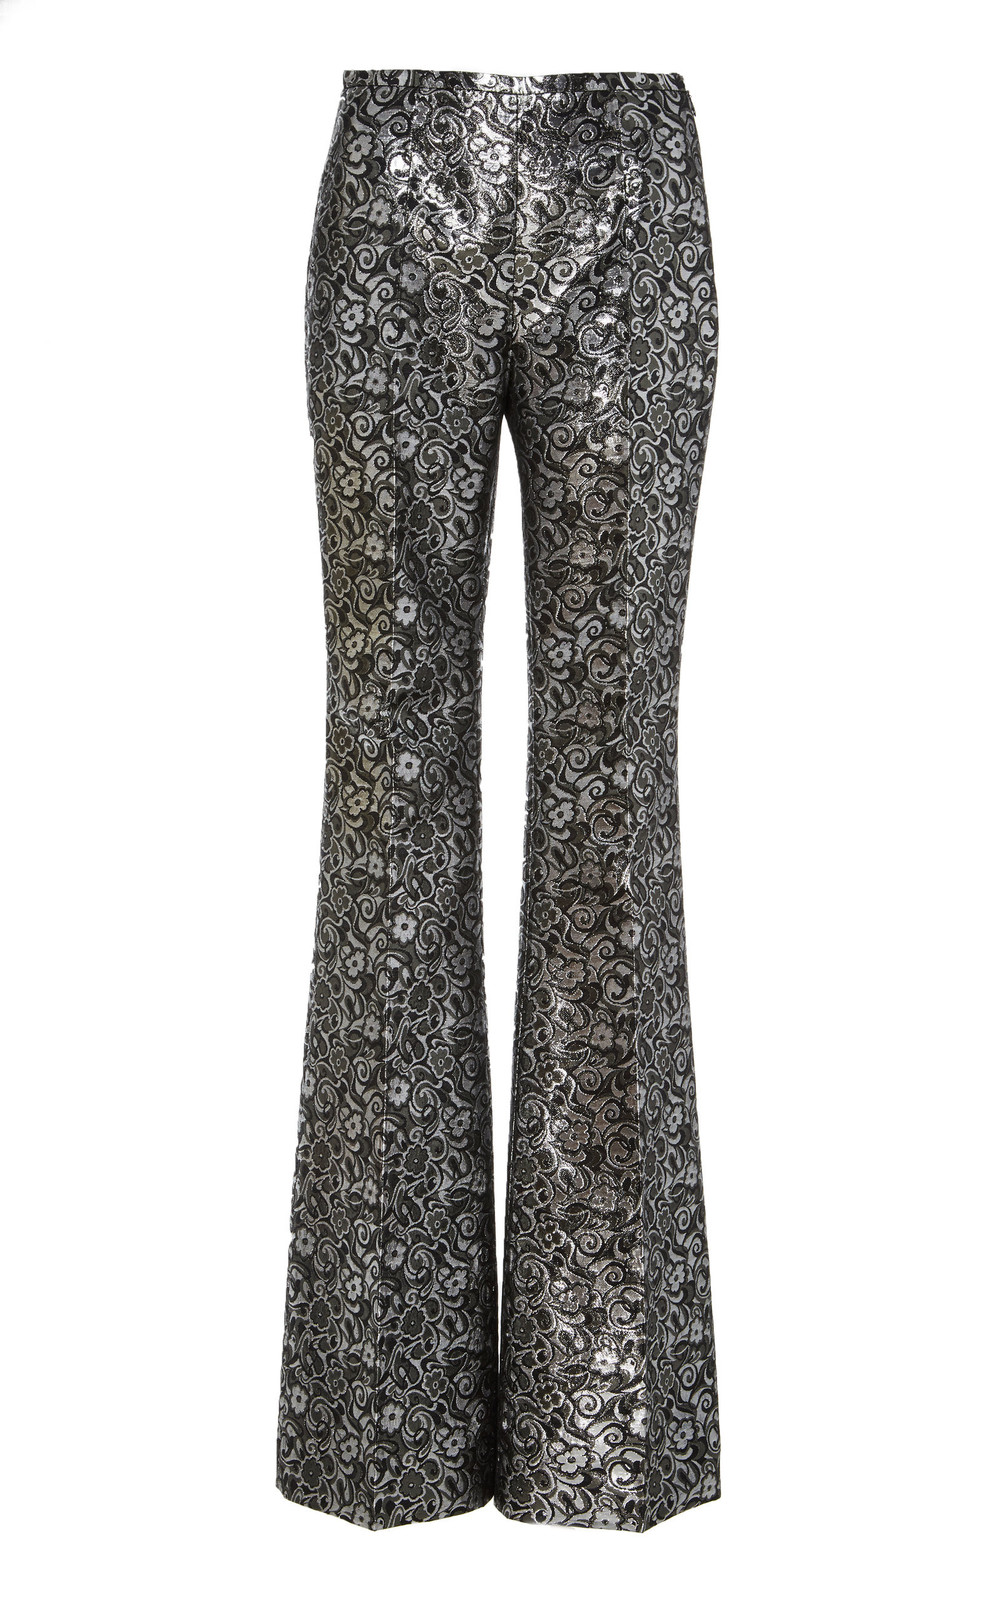 Michael Kors Collection Side Zip Flare Pant in silver